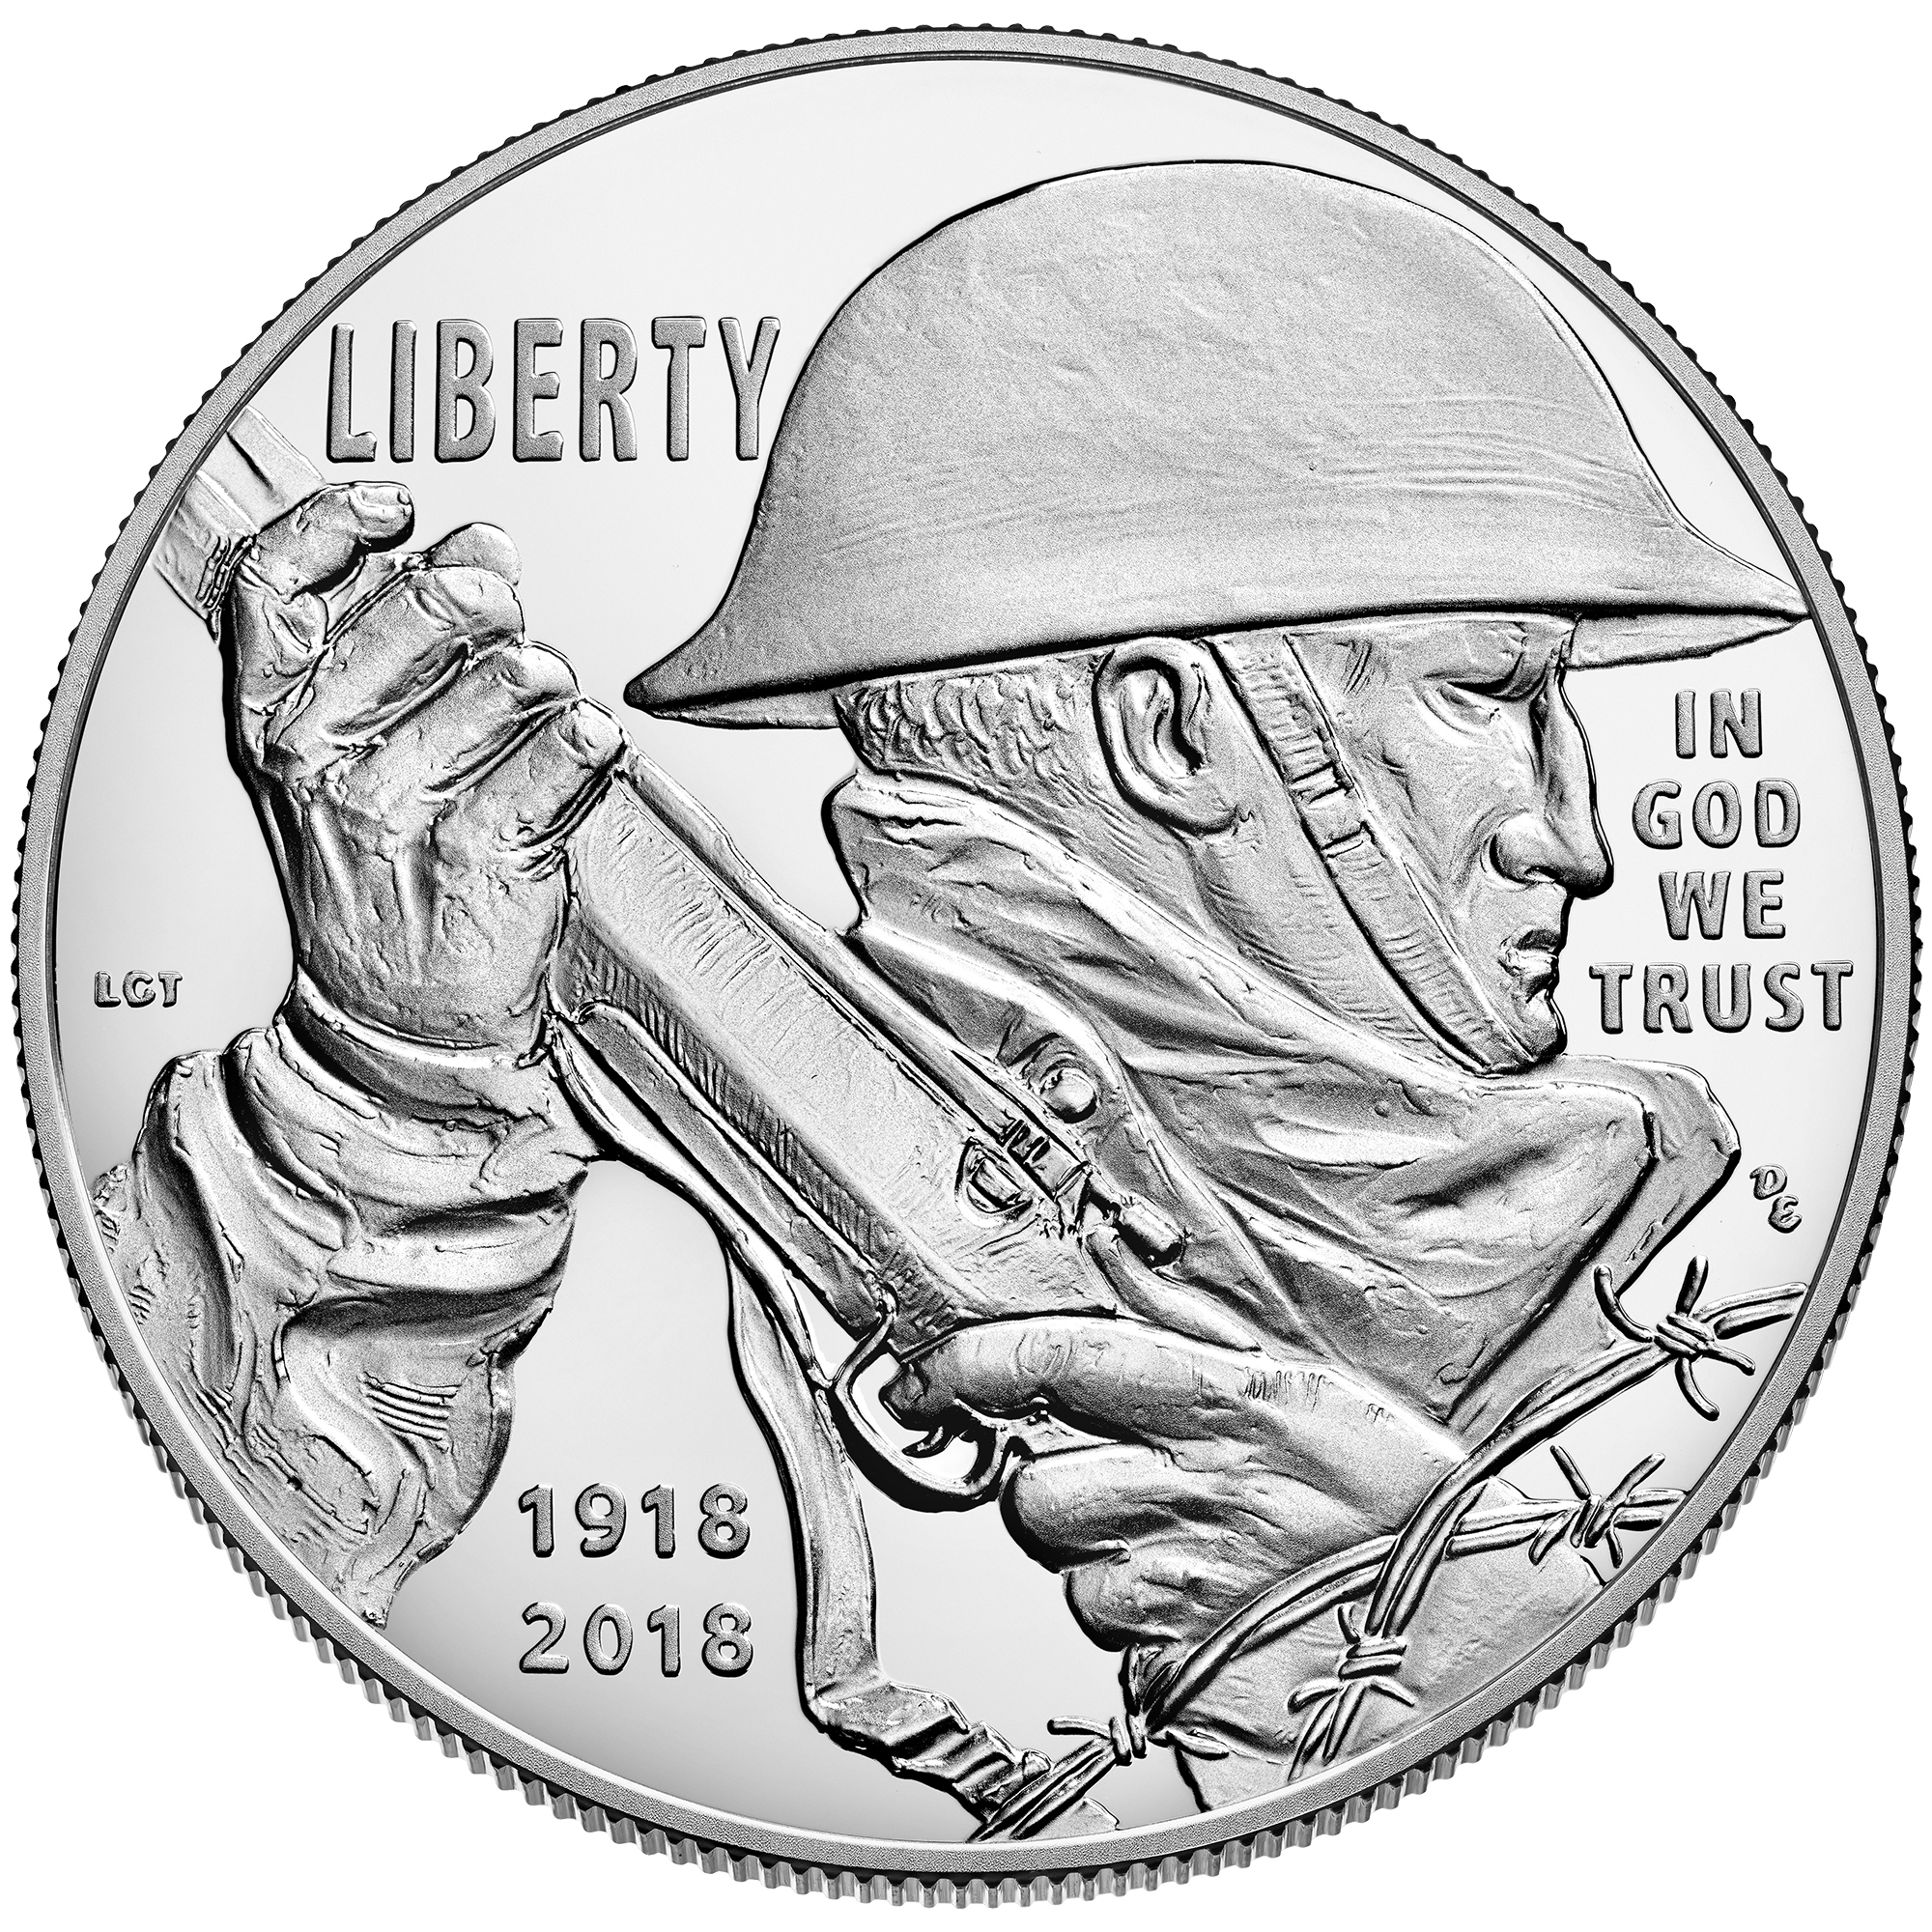 Obverse, United States 2018 WWI Army Veterans Centennial Silver $1 Commemorative Coin. Image courtesy US Mint